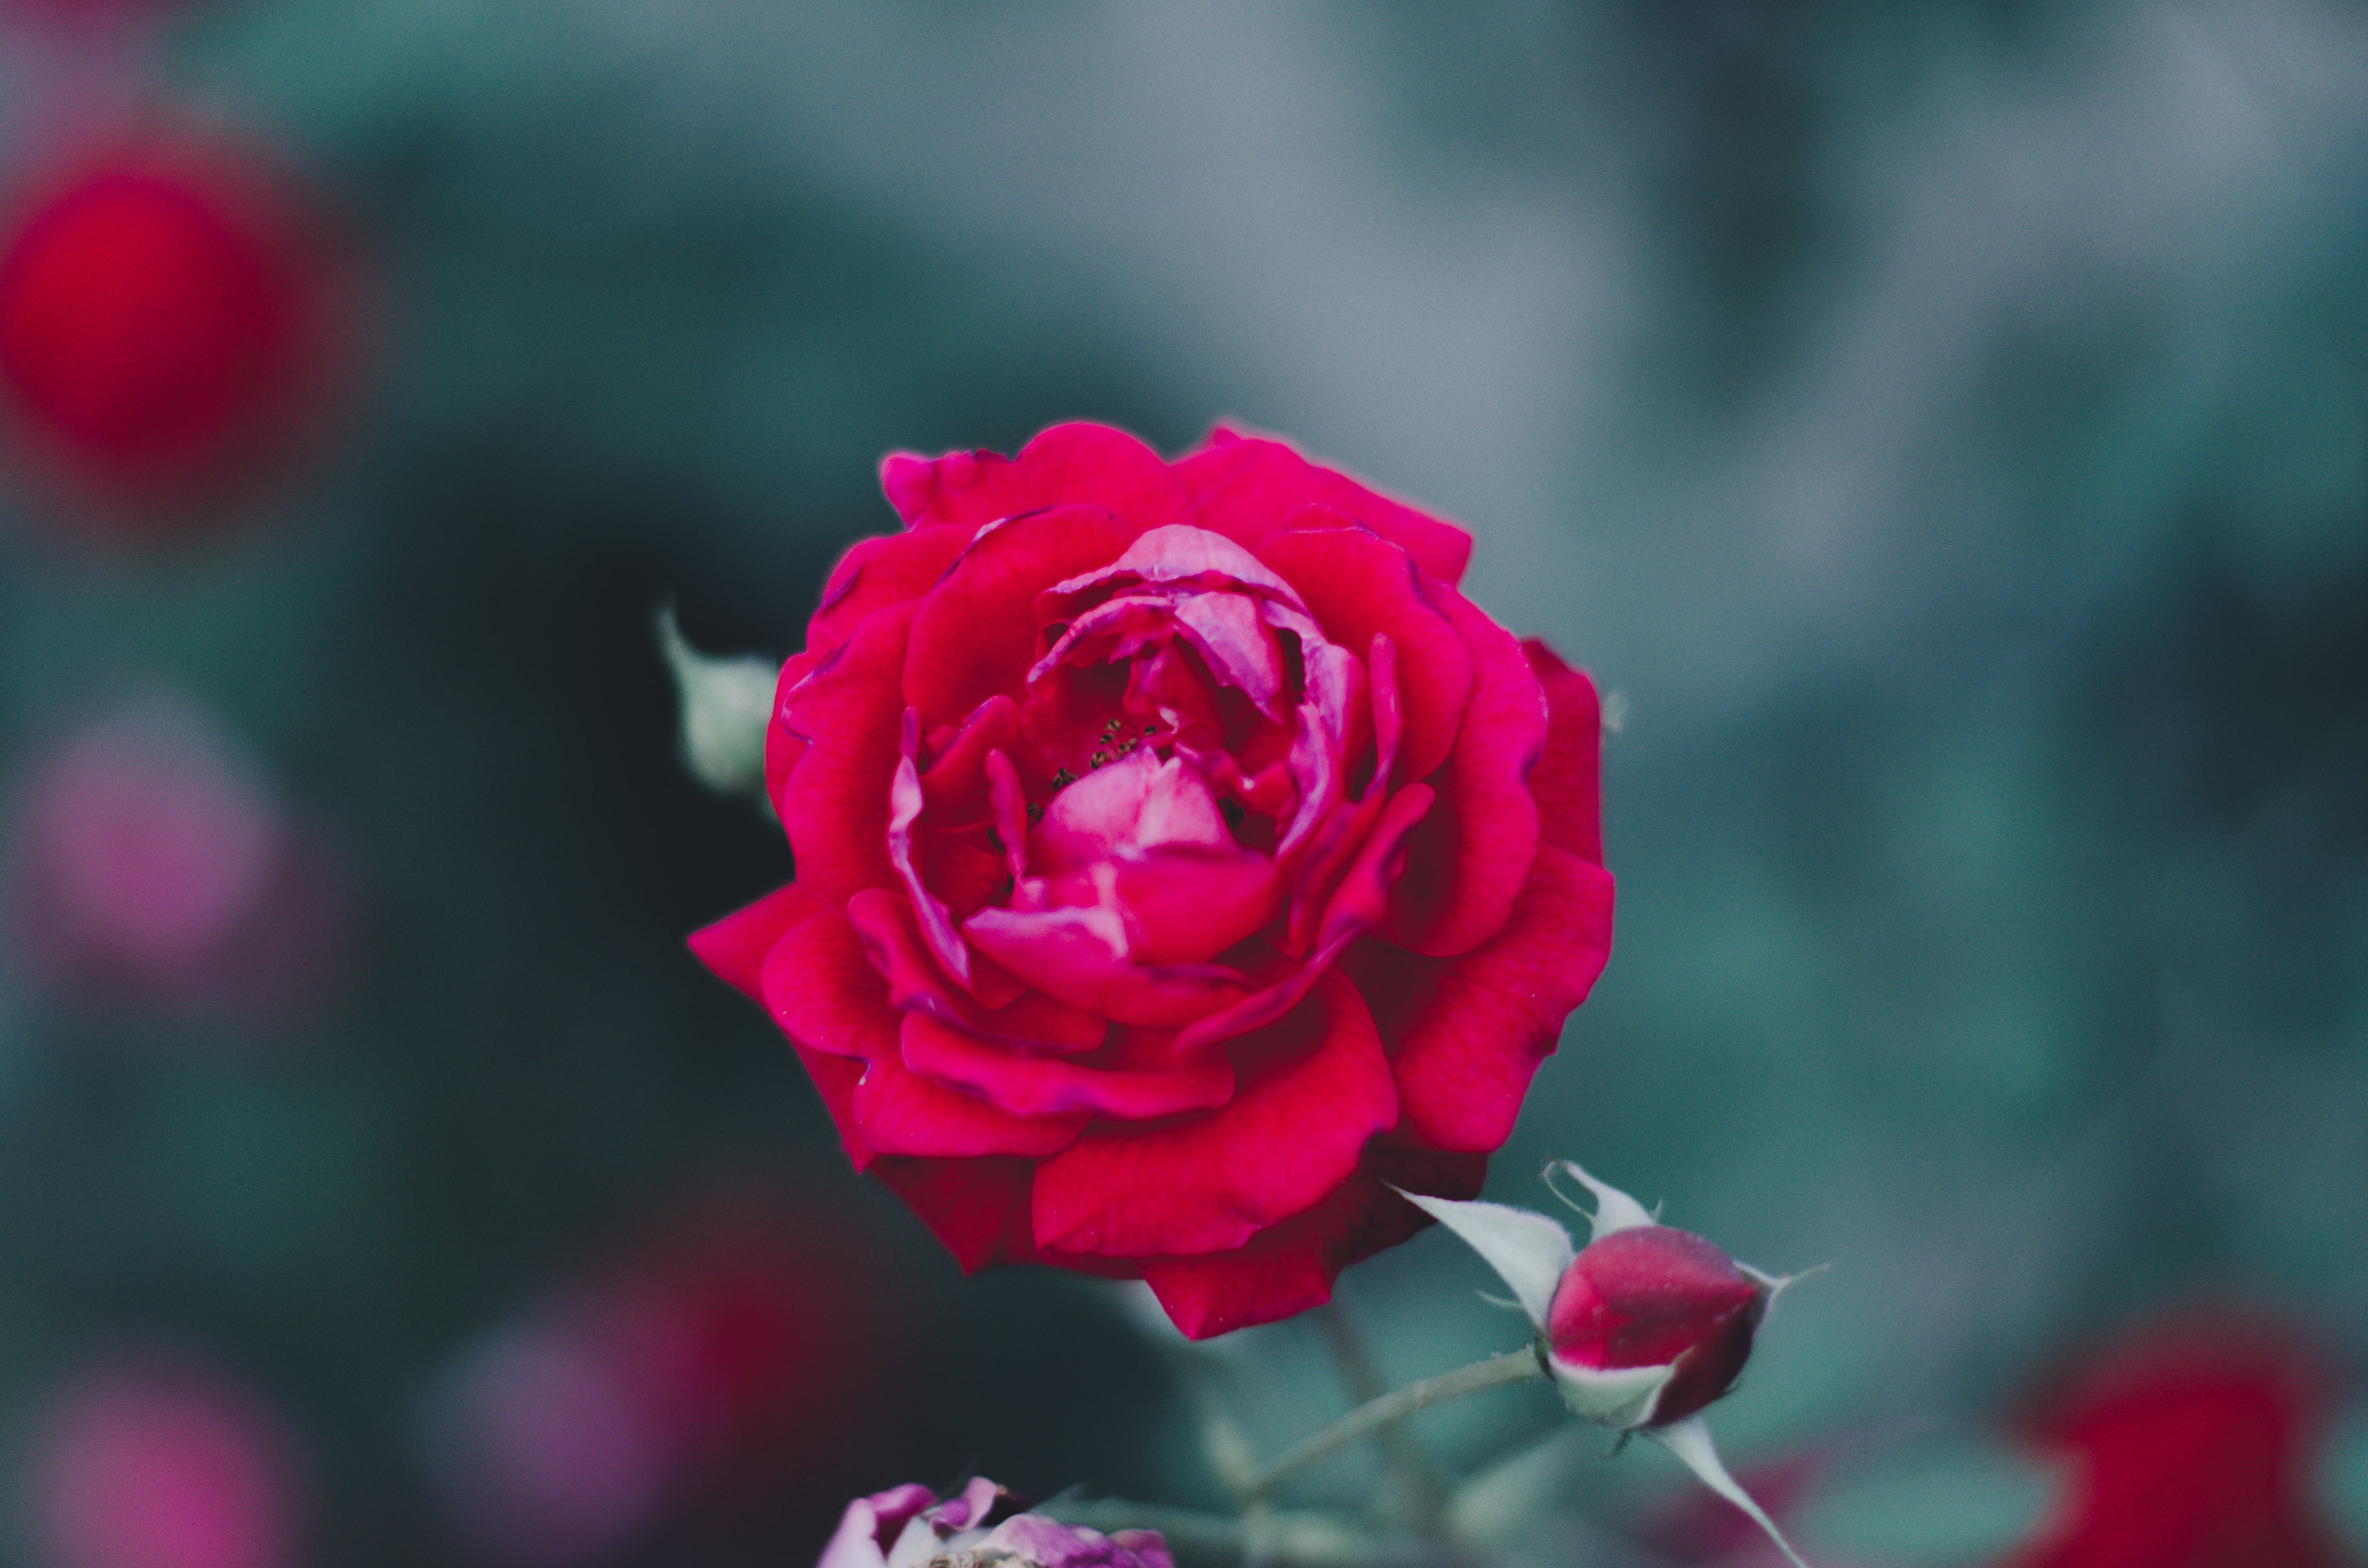 Free stock photo of Red Rose, rose